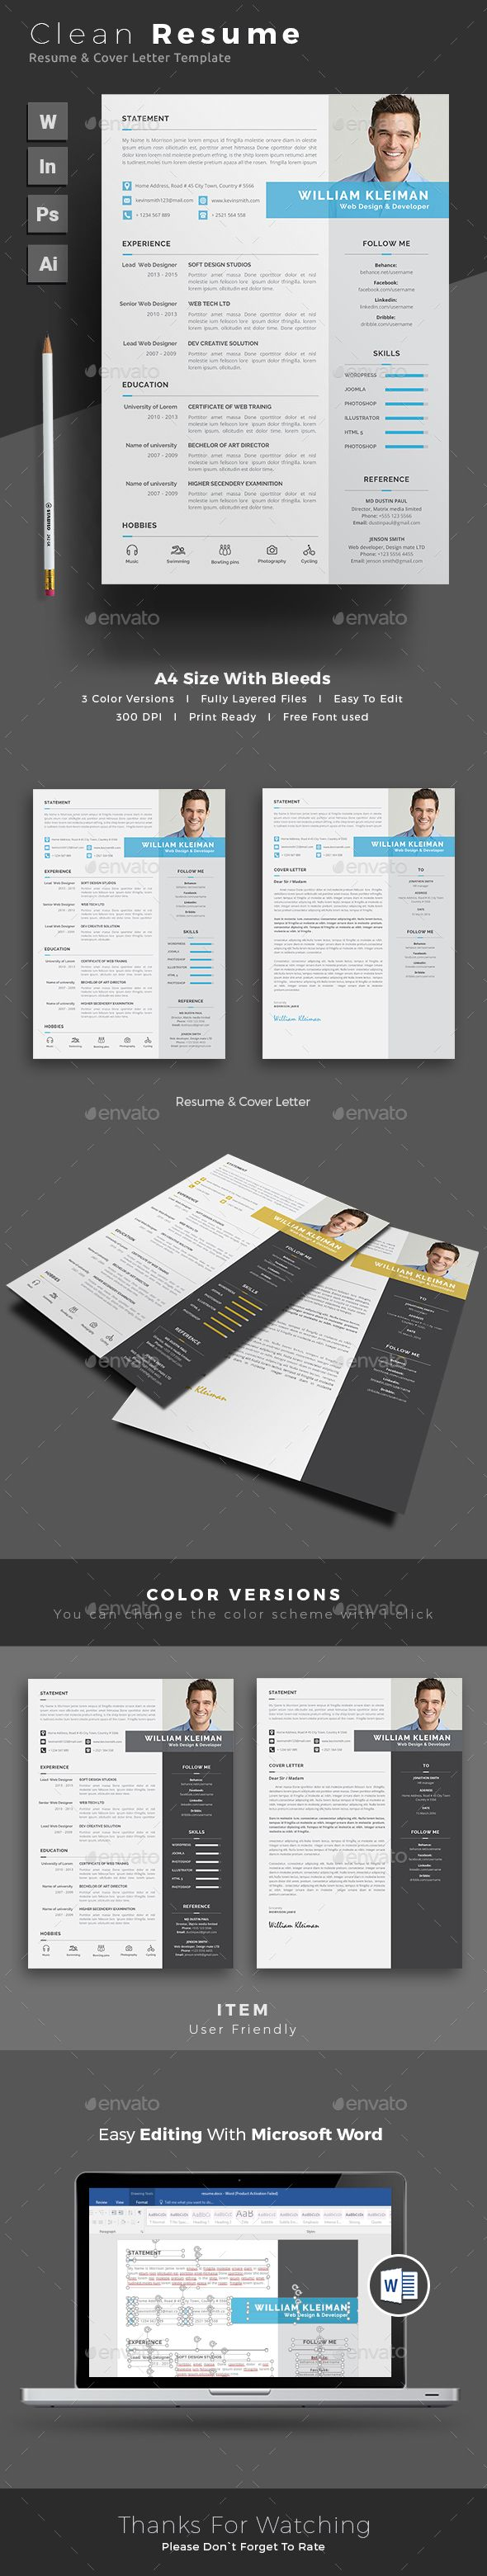 Behance Resume Template - 13 Best Creative Resumes Images On Pinterest